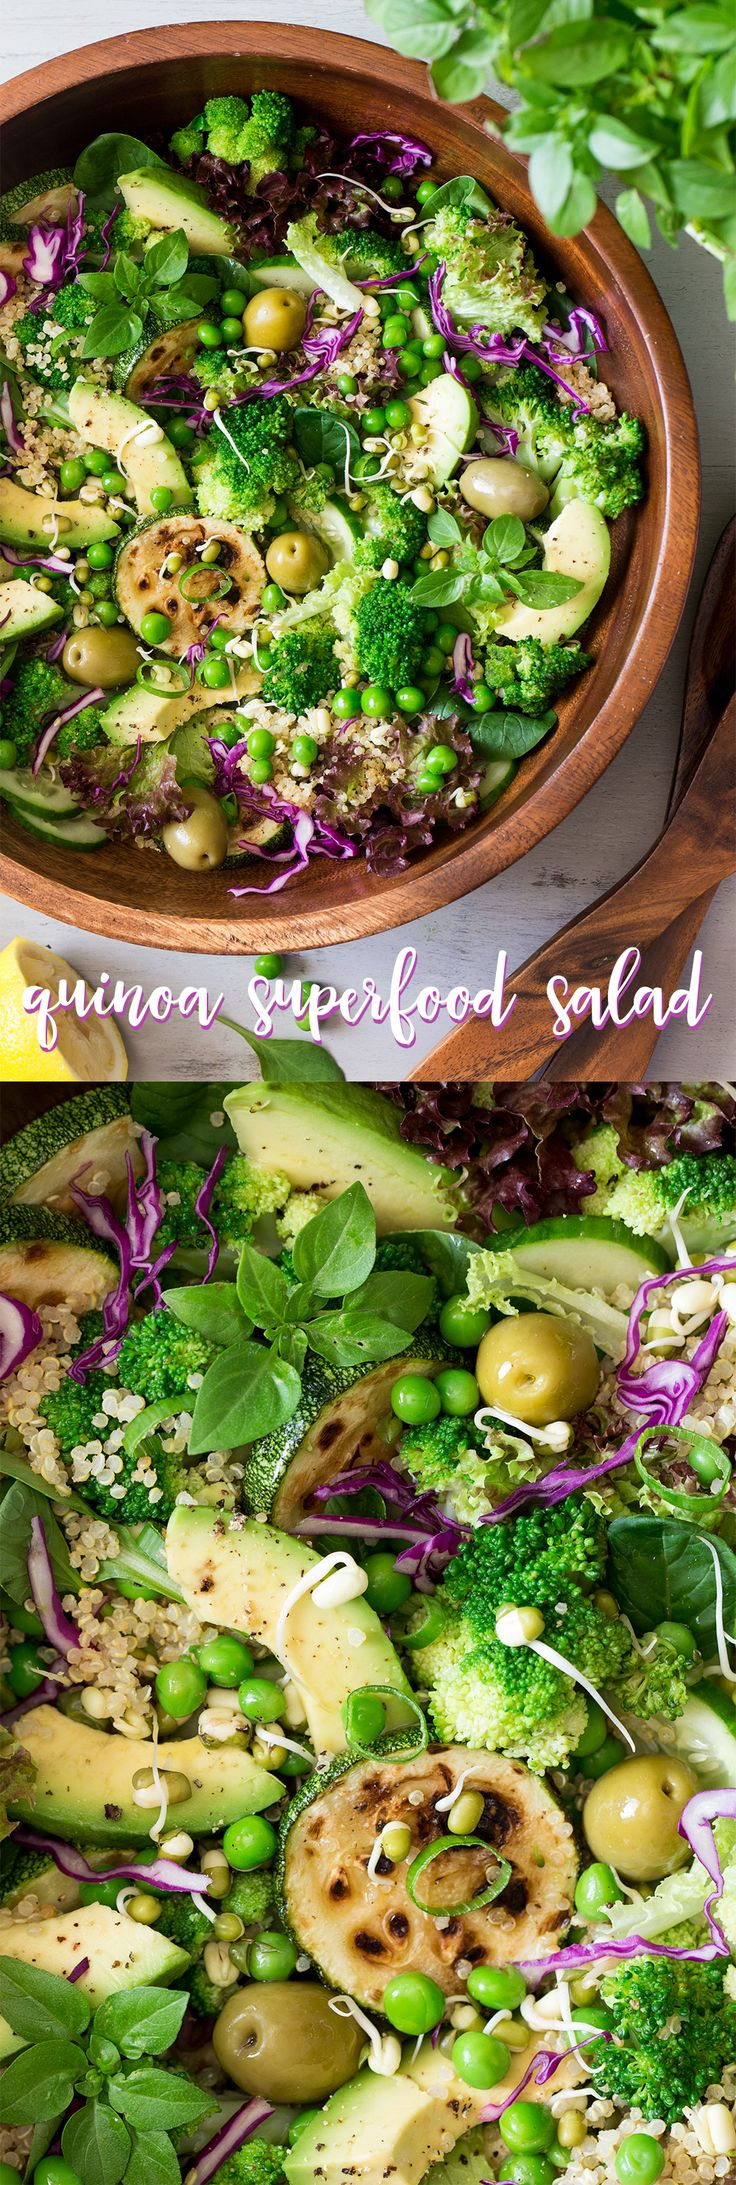 4276 best super healthy salads images on pinterest clean eating quinoa superfood salad vegan luncheshealthy vegetarian lunch ideassalad forumfinder Gallery